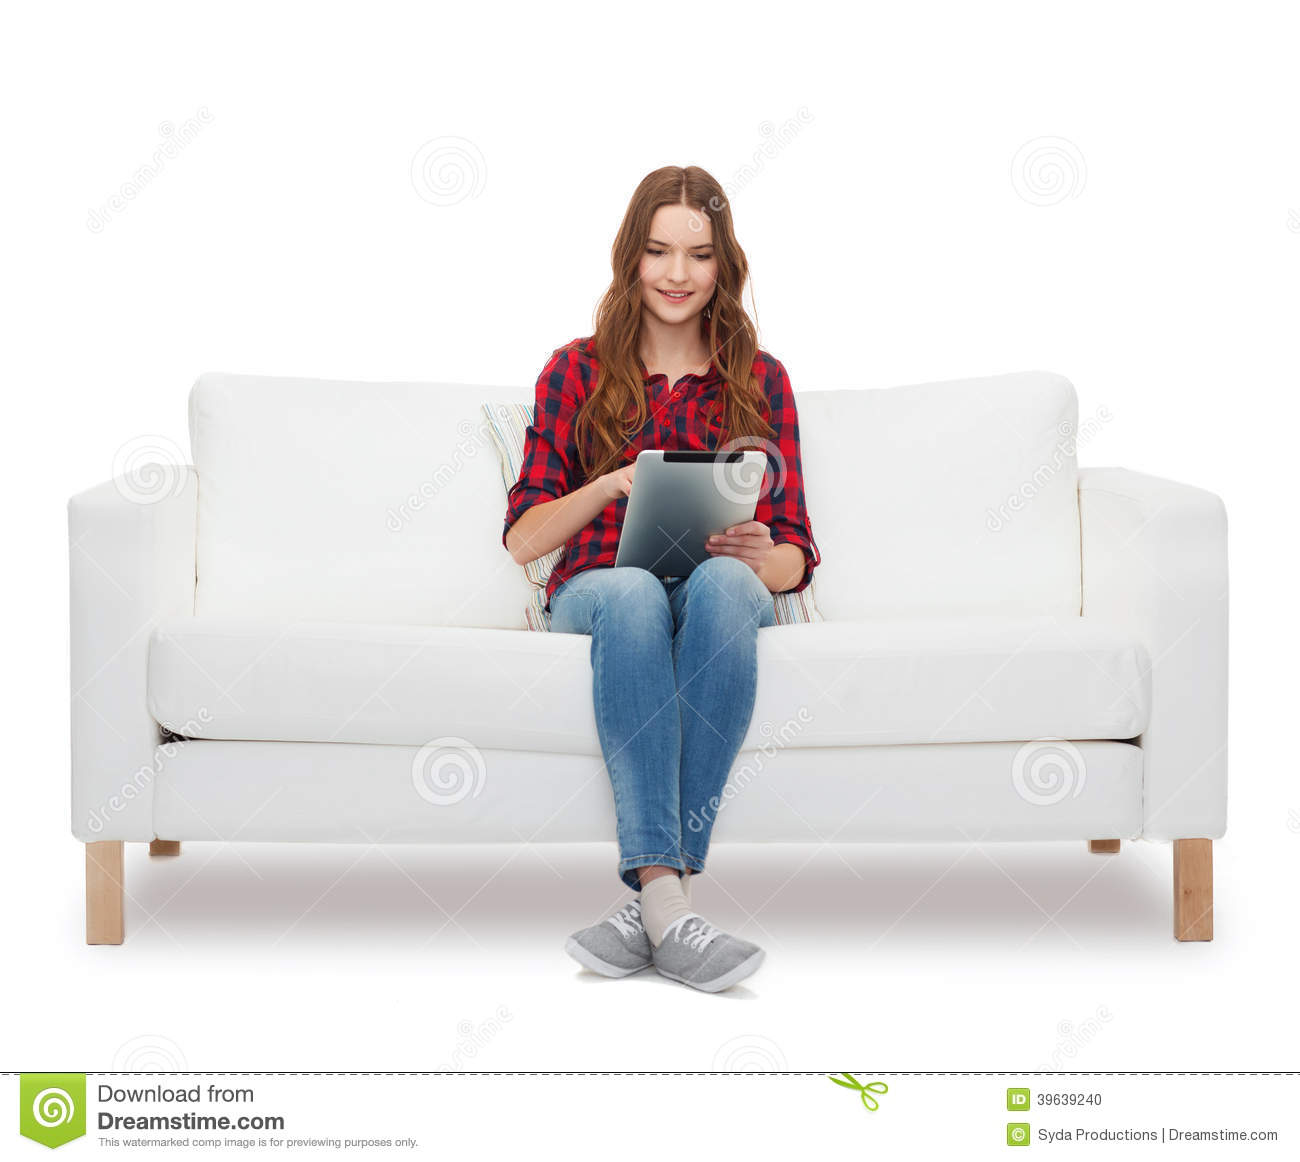 Bettsofa Jugend Teenage Girl Sitting On Sofa With Tablet Pc Stock Photo Image Of